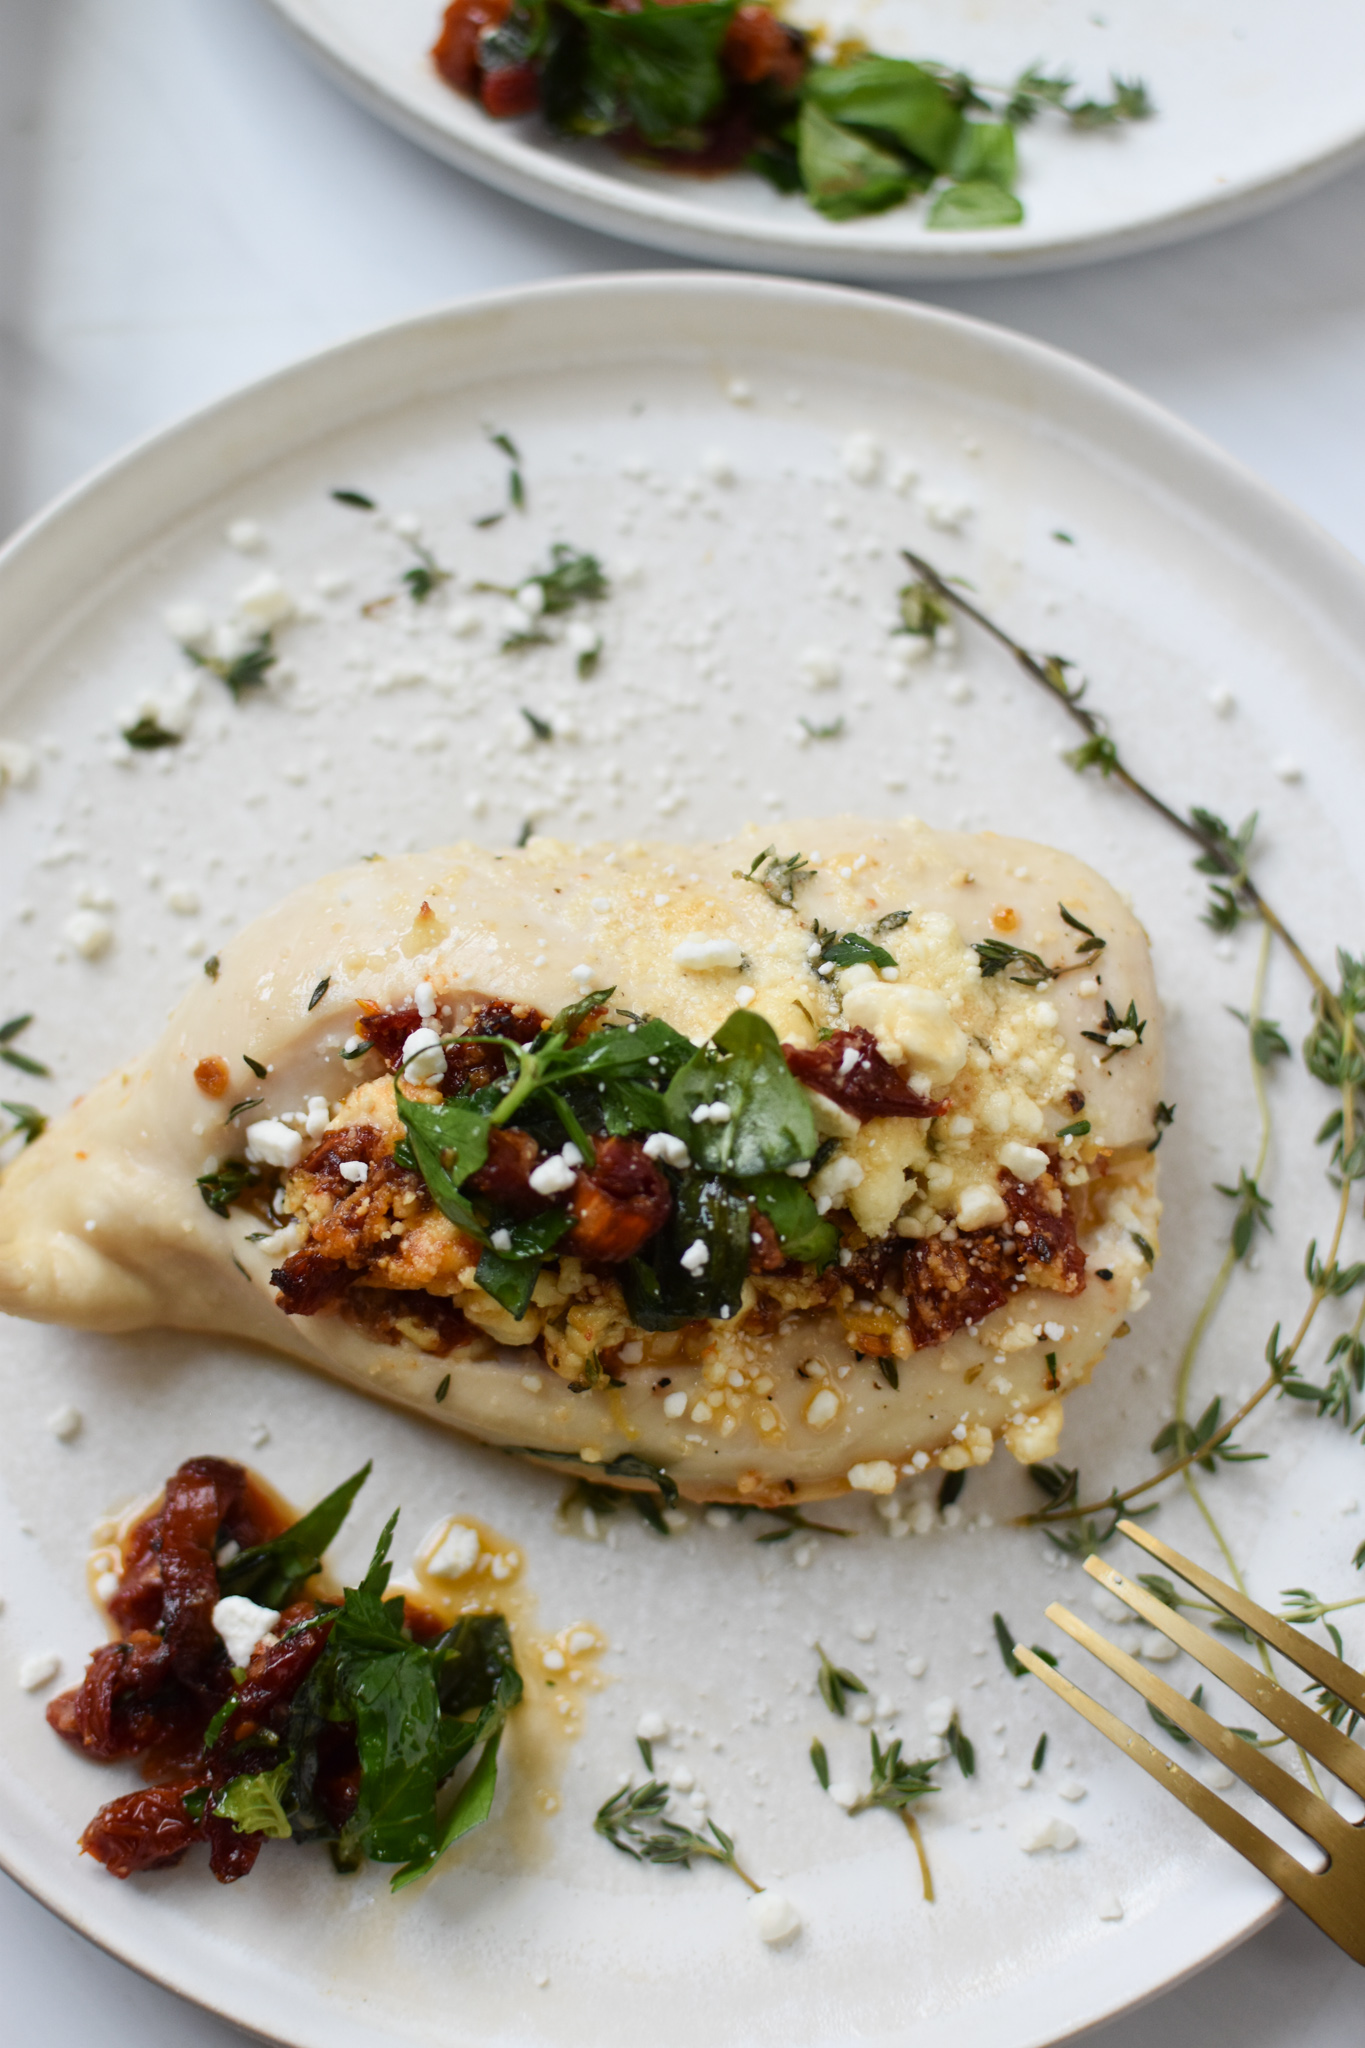 Sun-dried Tomato Goat Cheese Stuffed Chicken Breasts with thyme.